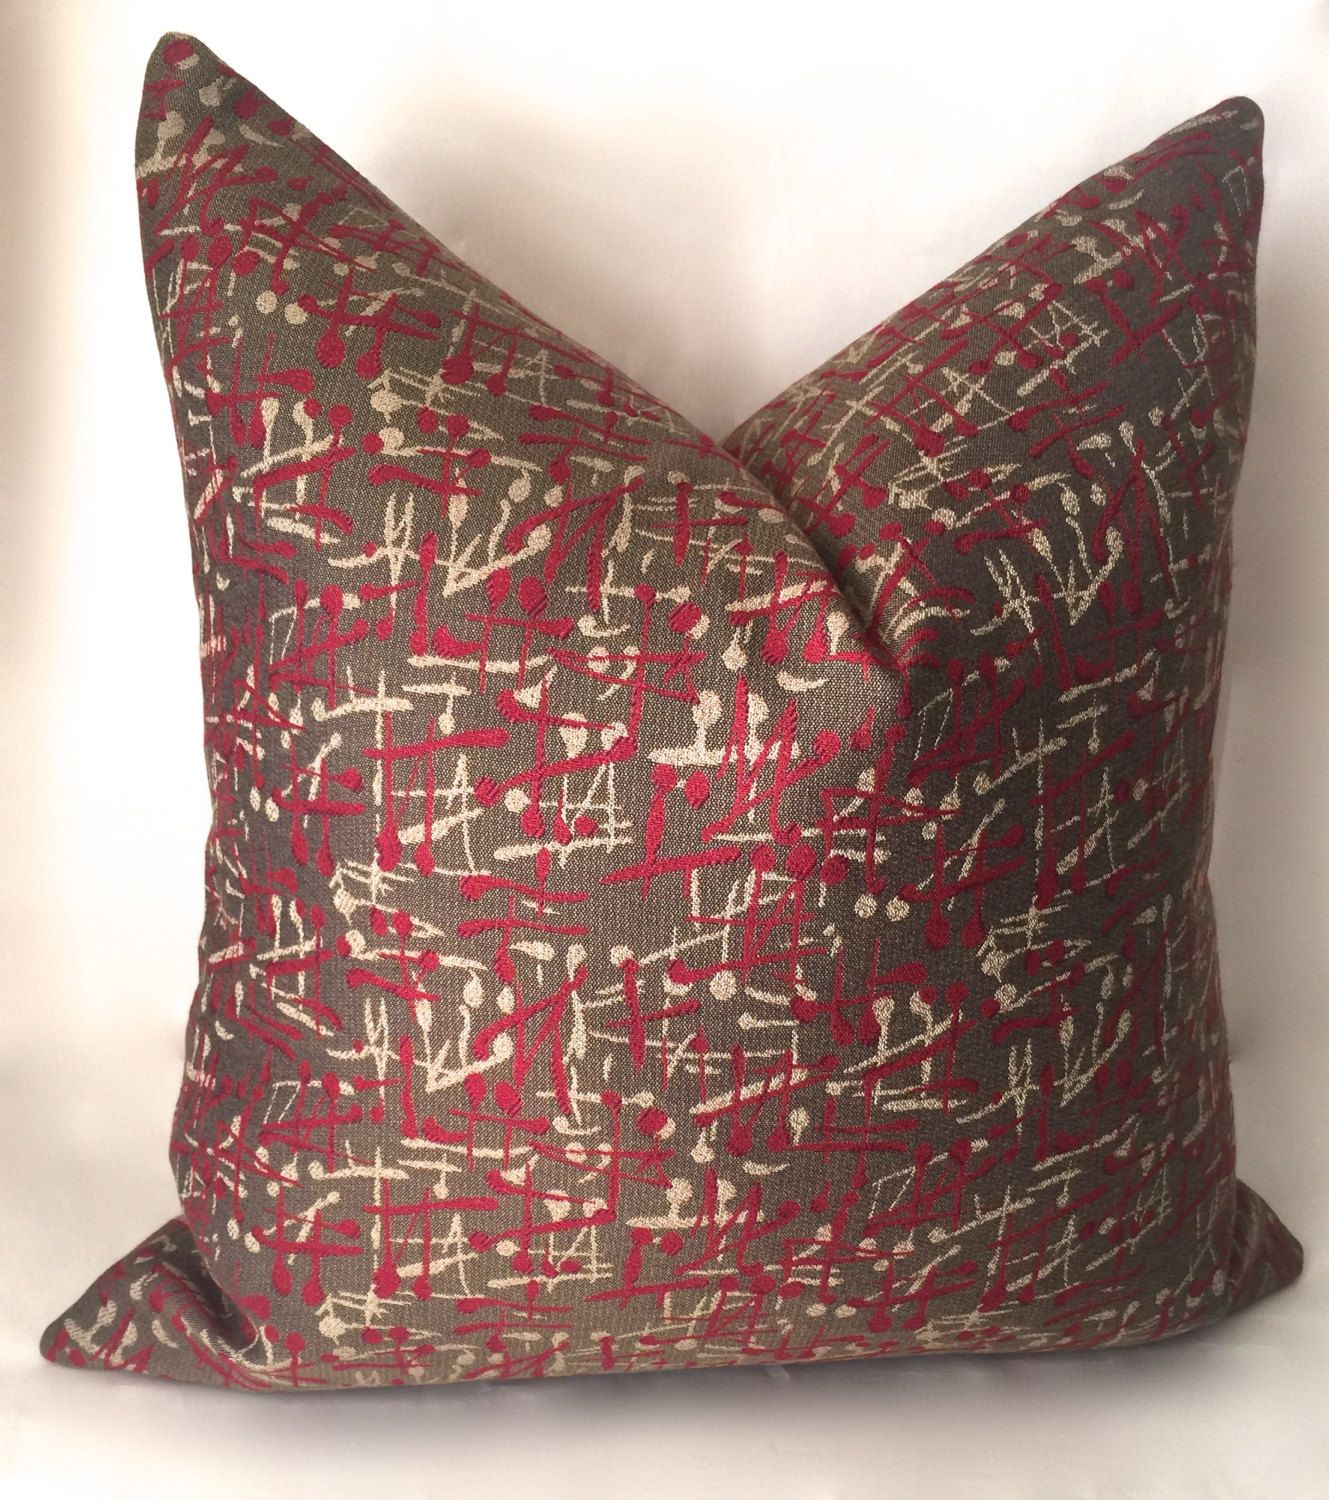 red accent pillows for sofa restoration hardware slipcover throw pillow cover gray beige decorative